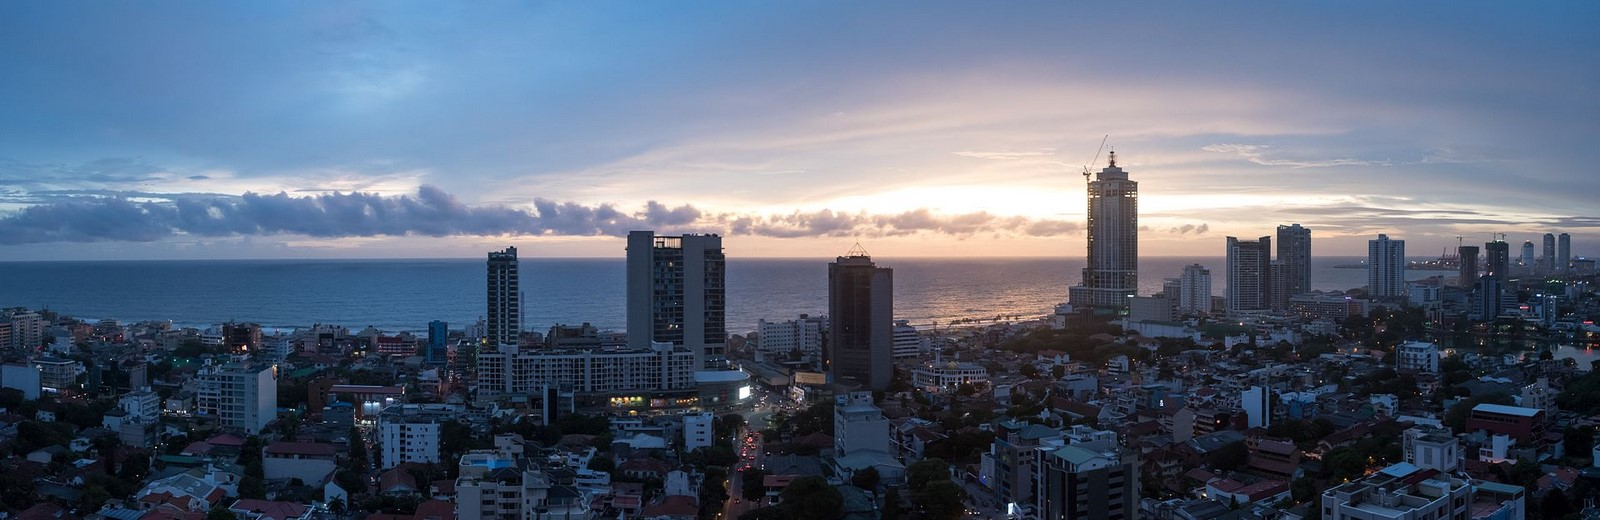 Architecture of Cities: Colombo: Fastest-growing city in the world - Sheet1